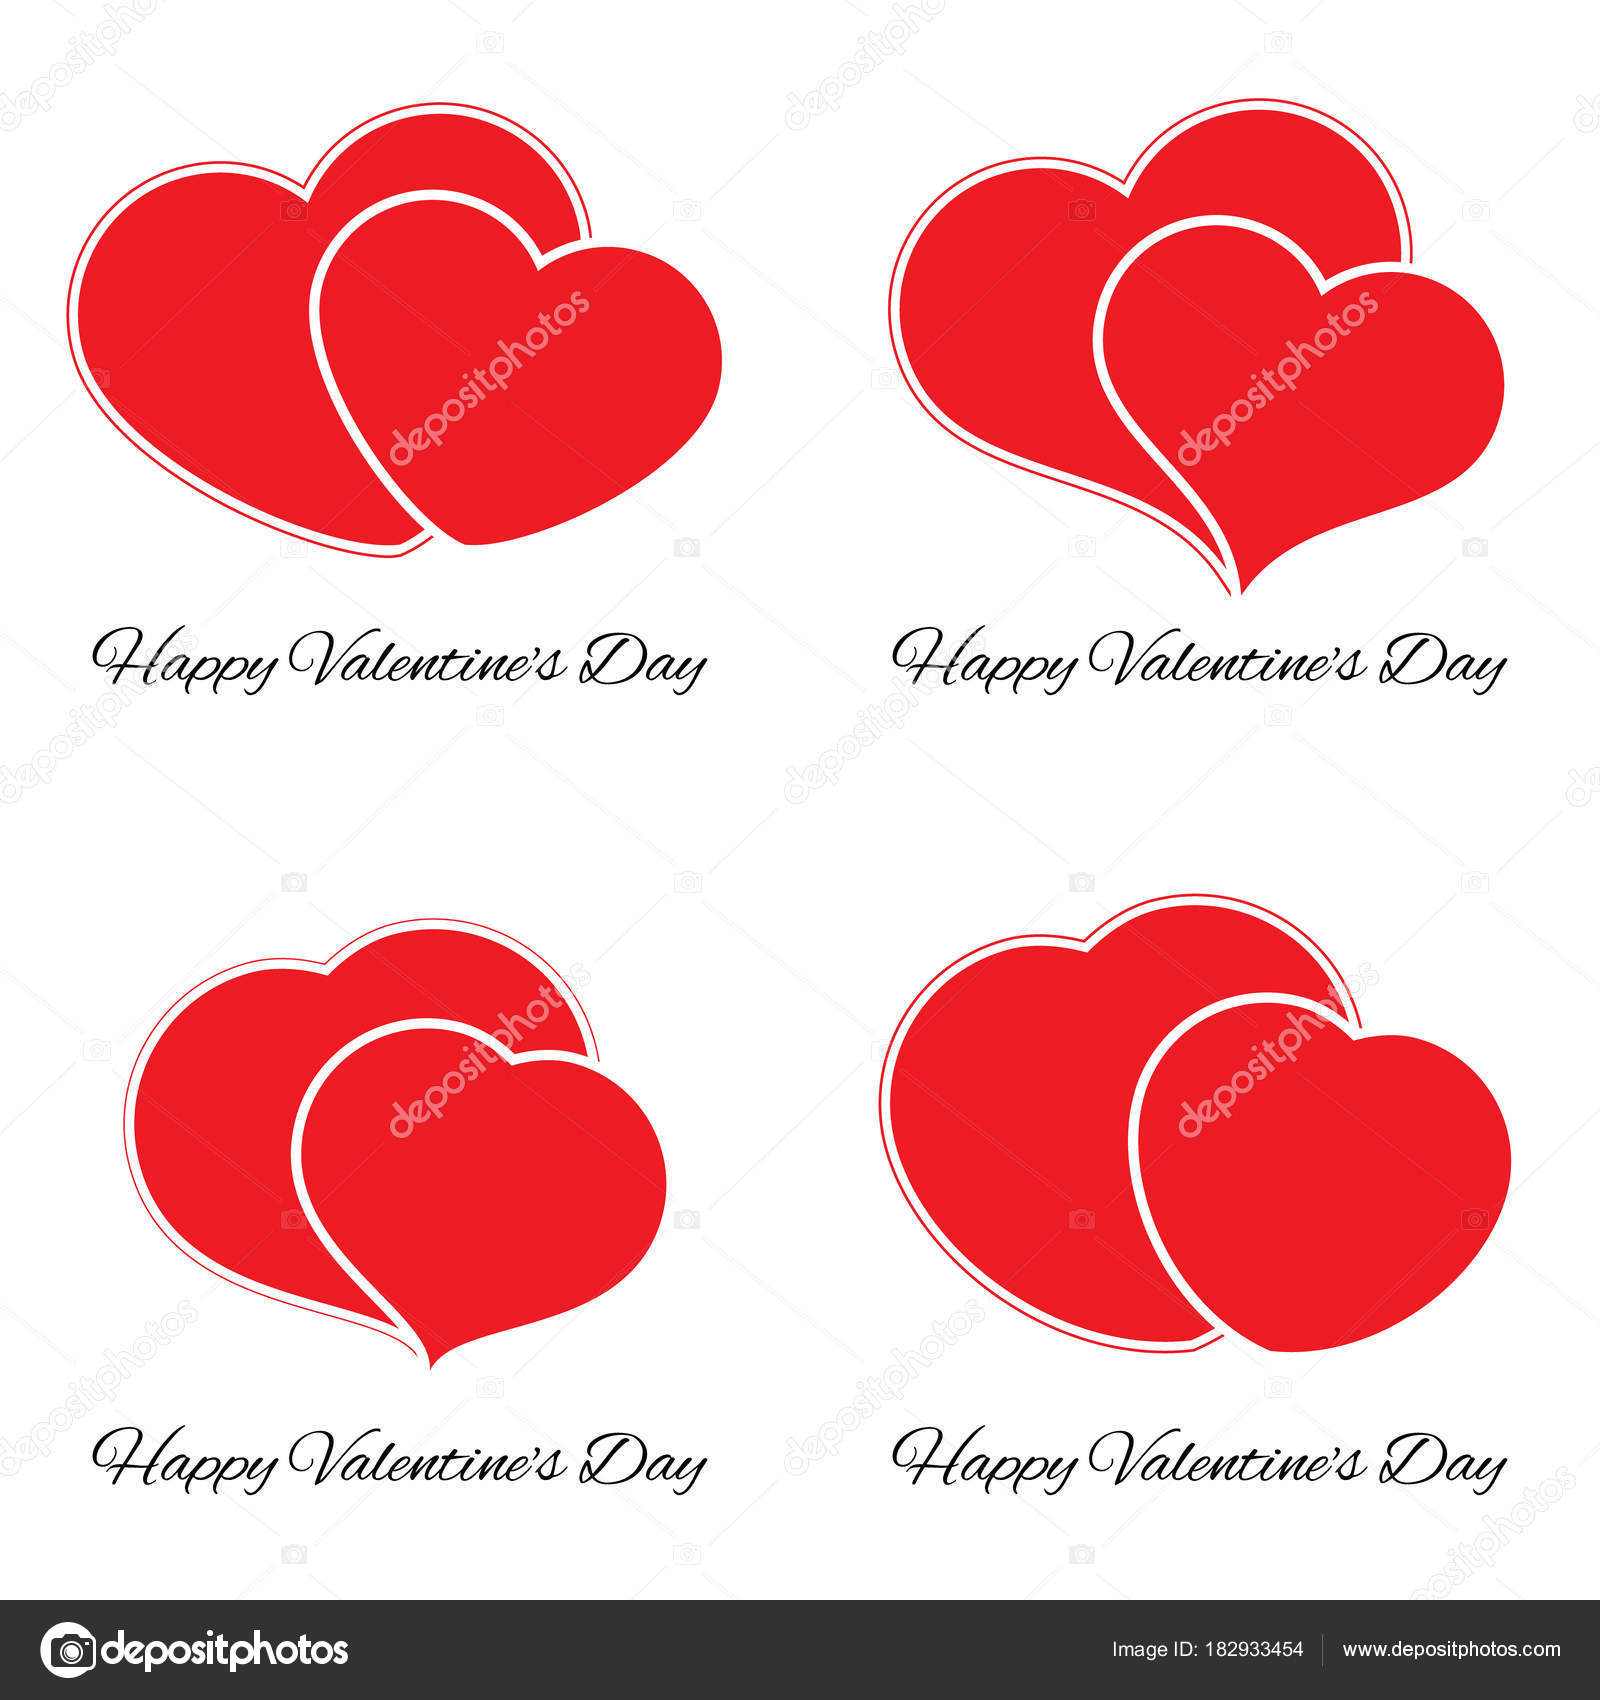 Set of four big and small red hearts romantic love symbol of set of four big and small red hearts romantic love symbol of valentine day buycottarizona Image collections